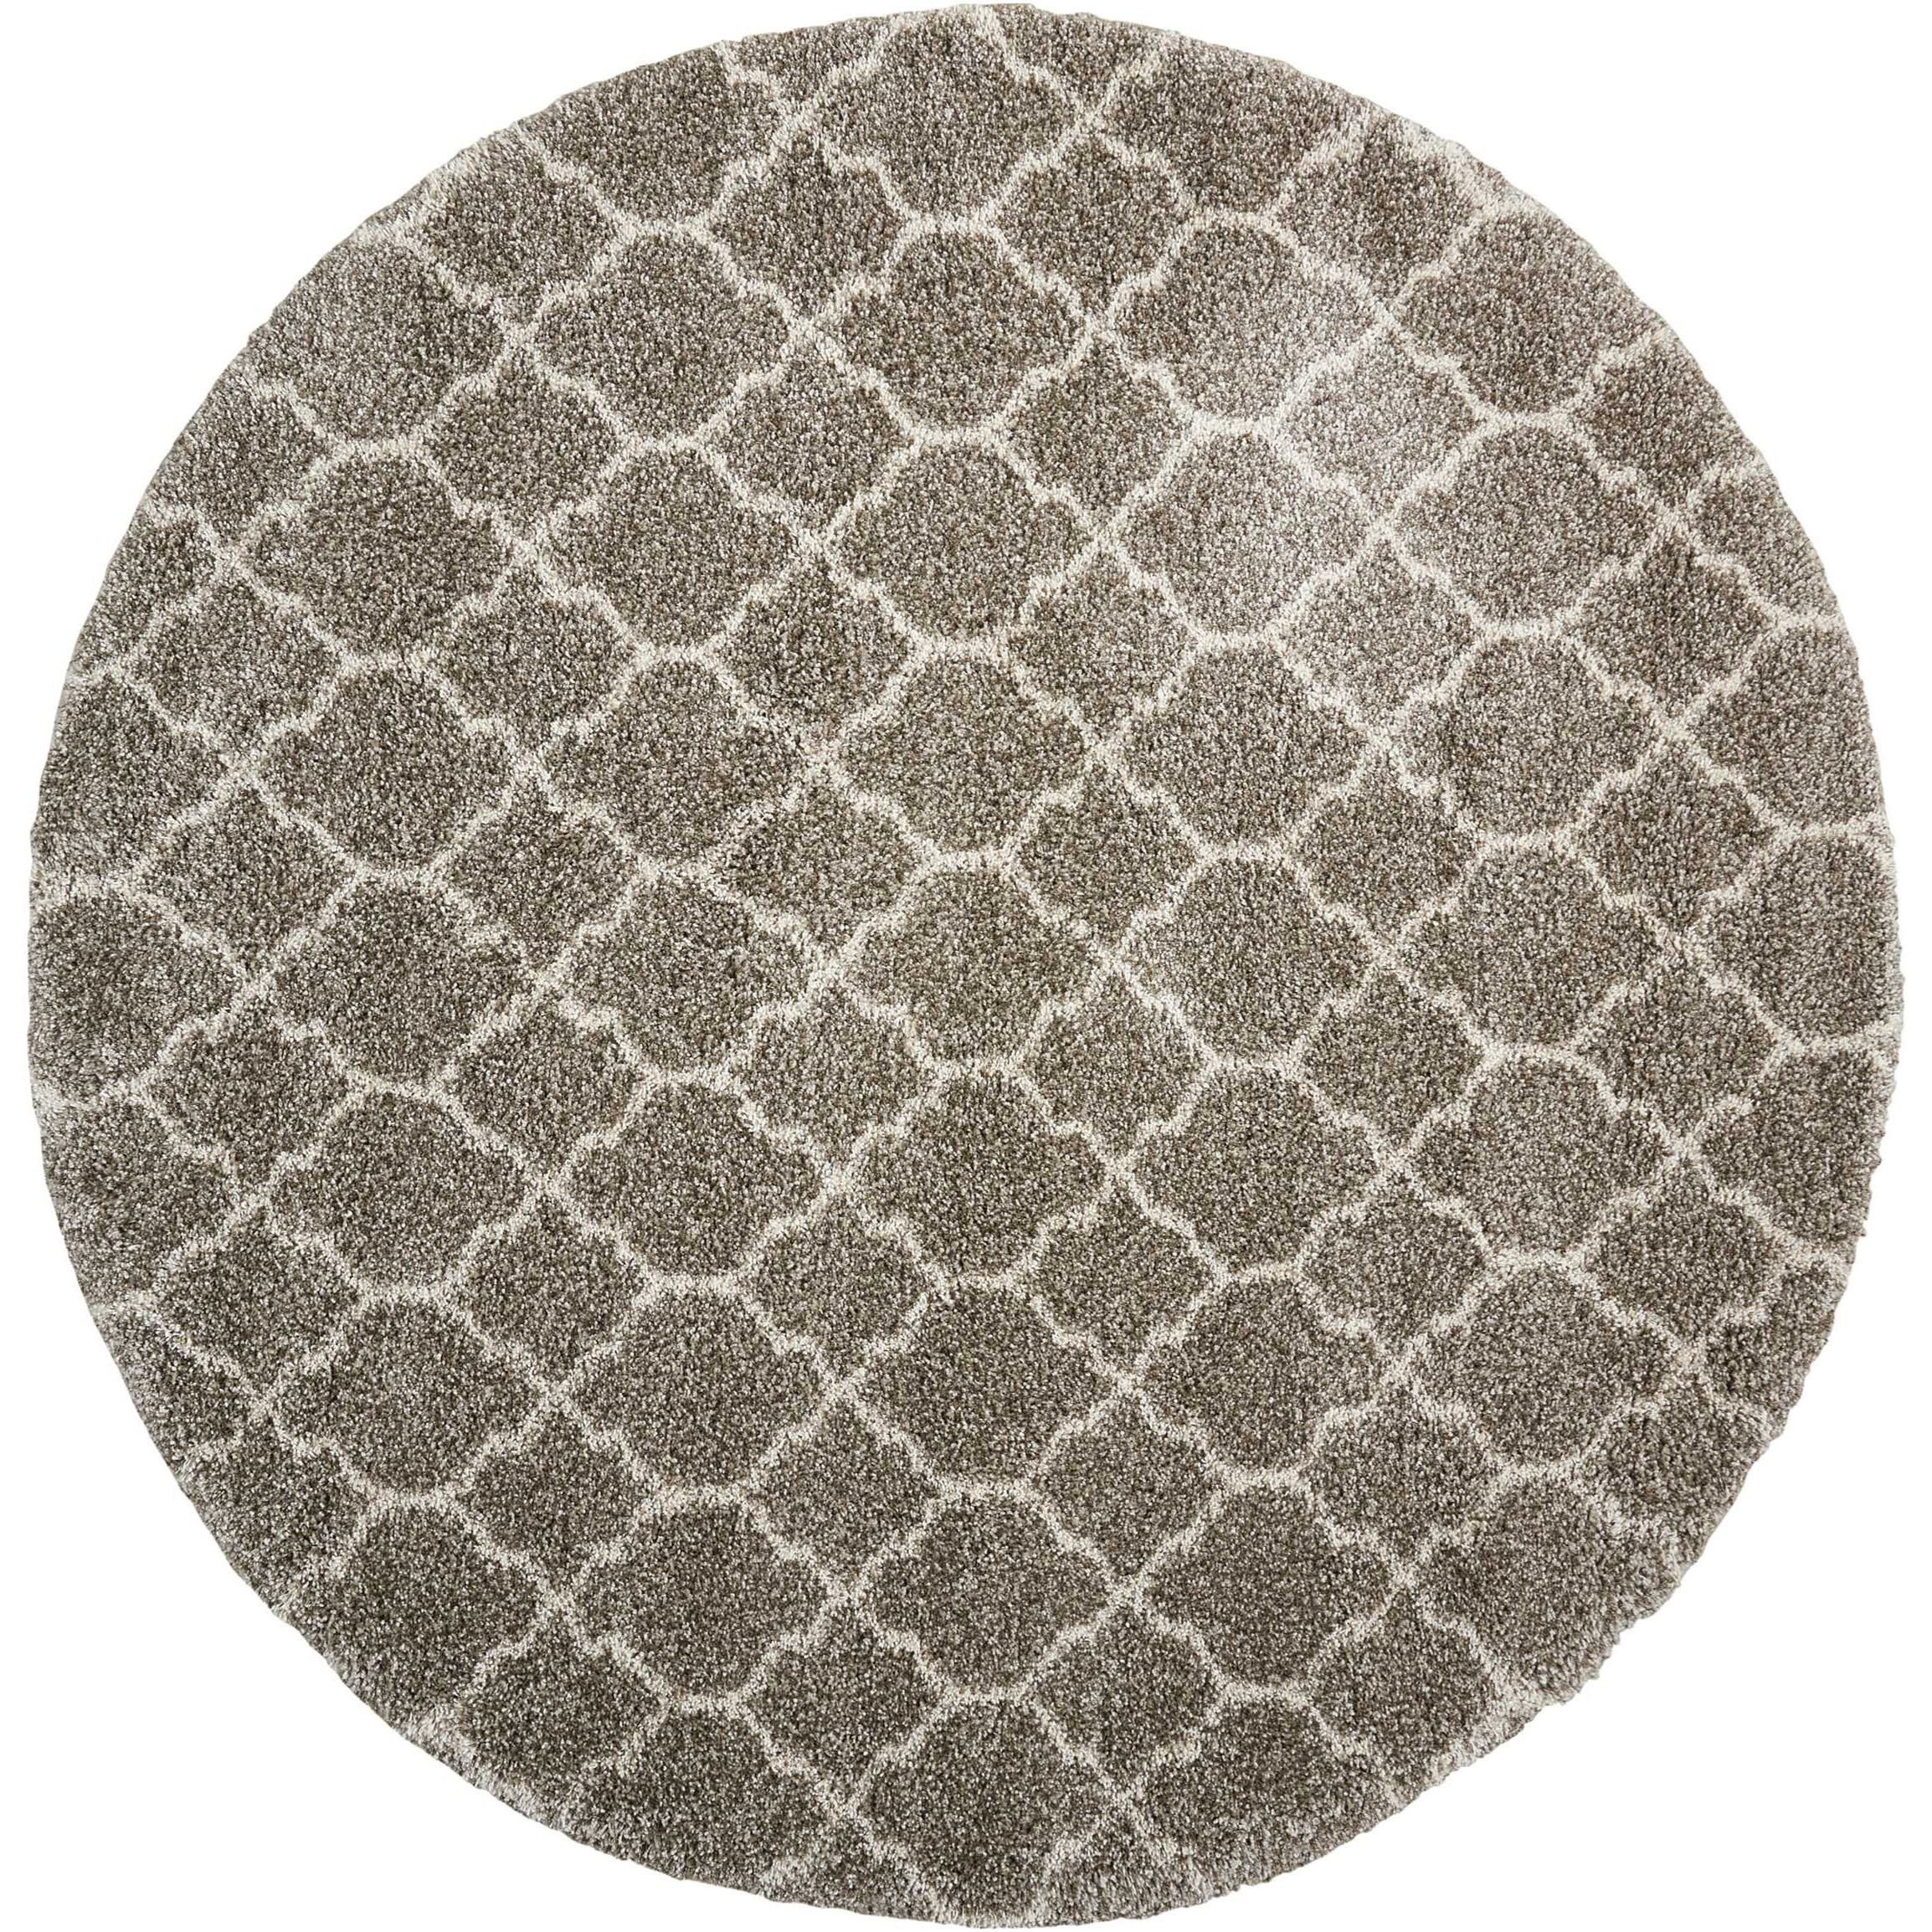 """Amore 7'10"""" x 7'10"""" Stone Round Rug by Nourison at Home Collections Furniture"""